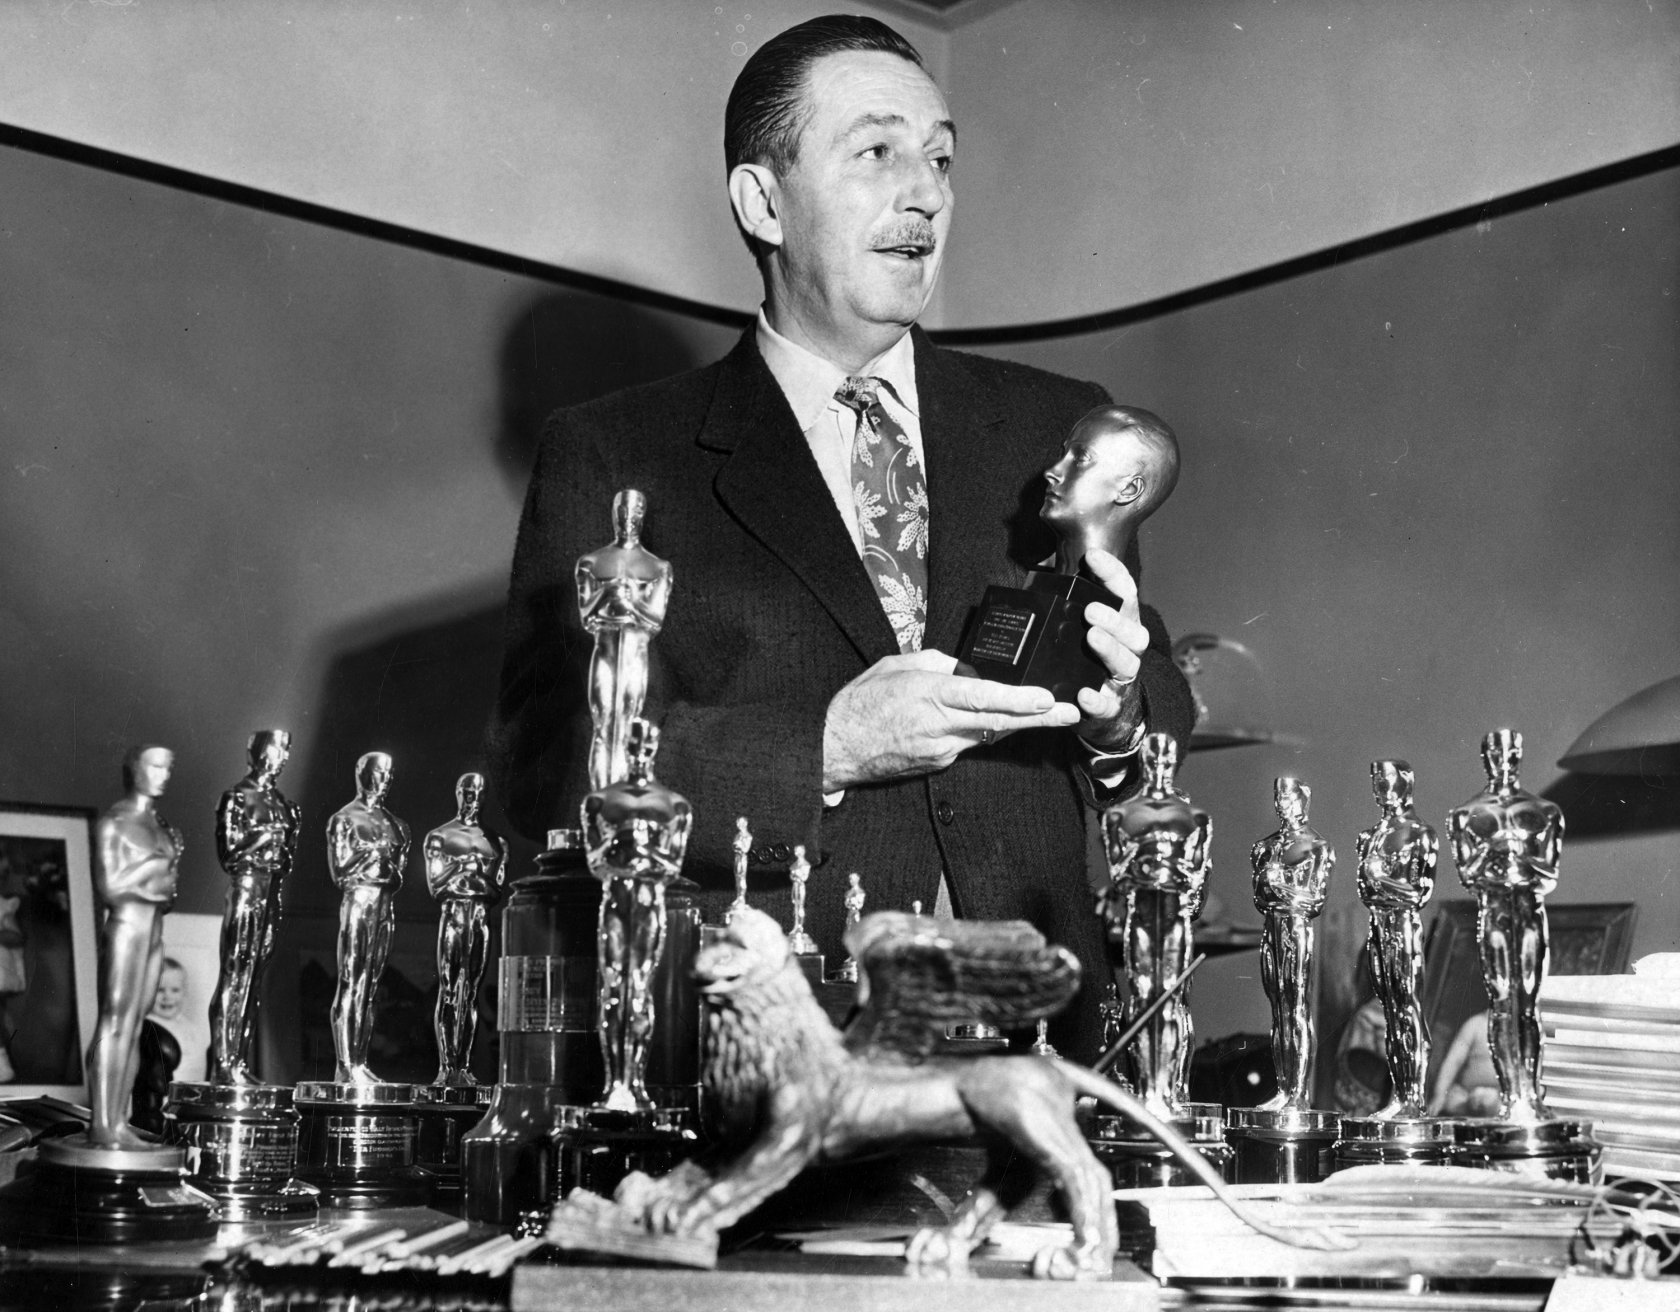 an introduction to the life and career of walt disney Walt disney's personal awards included honorary degrees from harvard, yale, the university of after the war, walt returned to kansas city, where he began his career as an advertising cartoonist in august of 1923, walt disney left kansas city for hollywood with nothing but a few drawing materials.